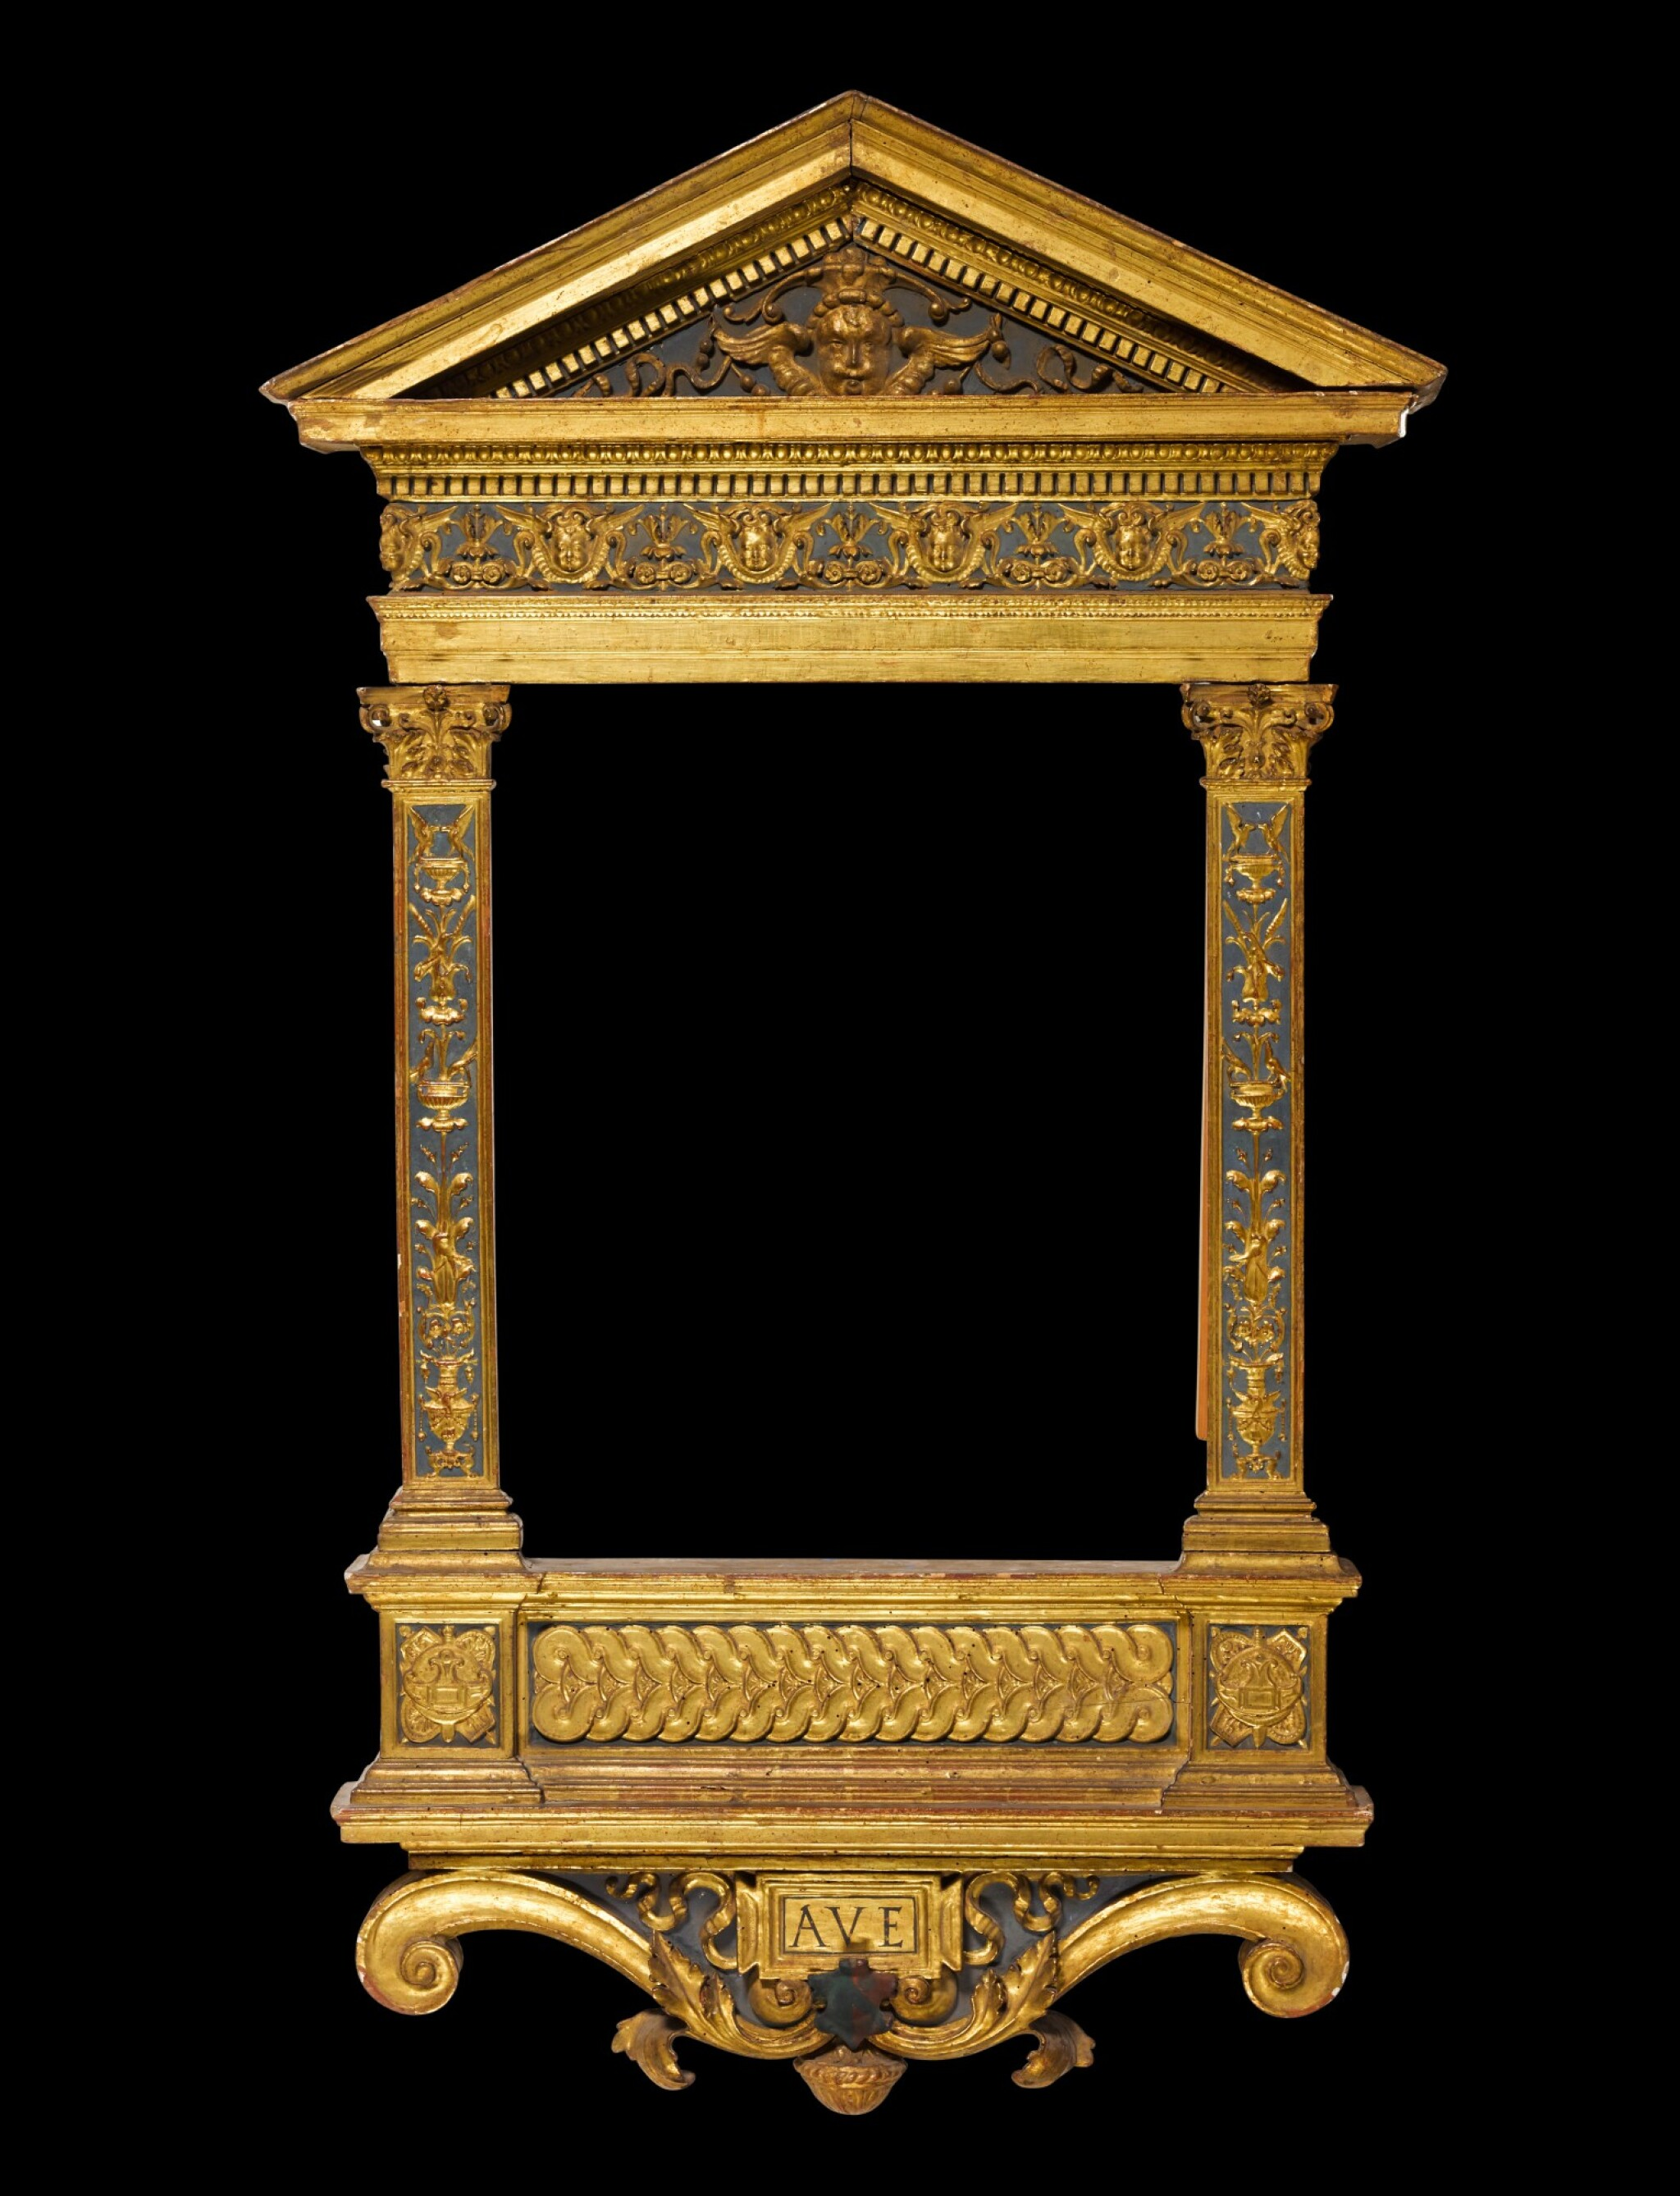 View 1 of Lot 170. A North Italian Renaissance style painted and parcel gilt gesso and wood tabernacle frame, probably Tuscany, incorporating old elements.